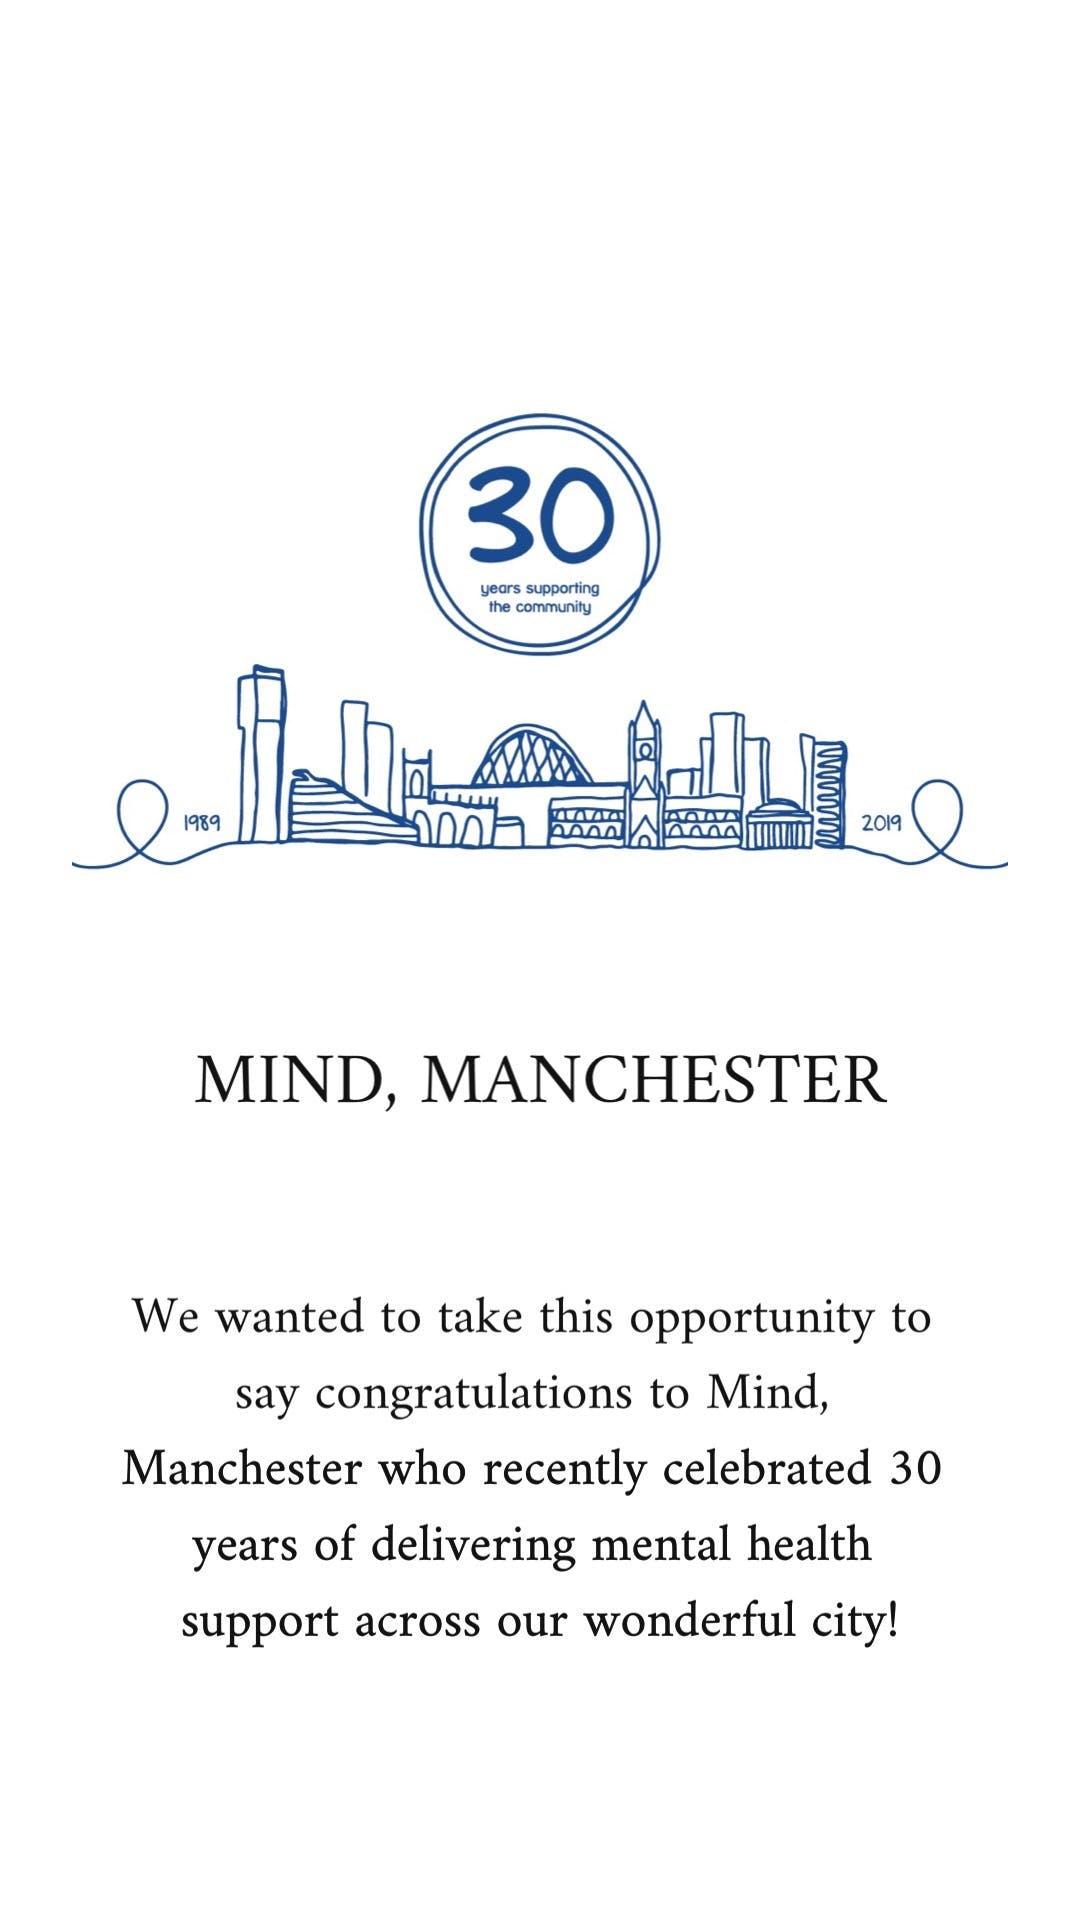 mind manchester 30 years